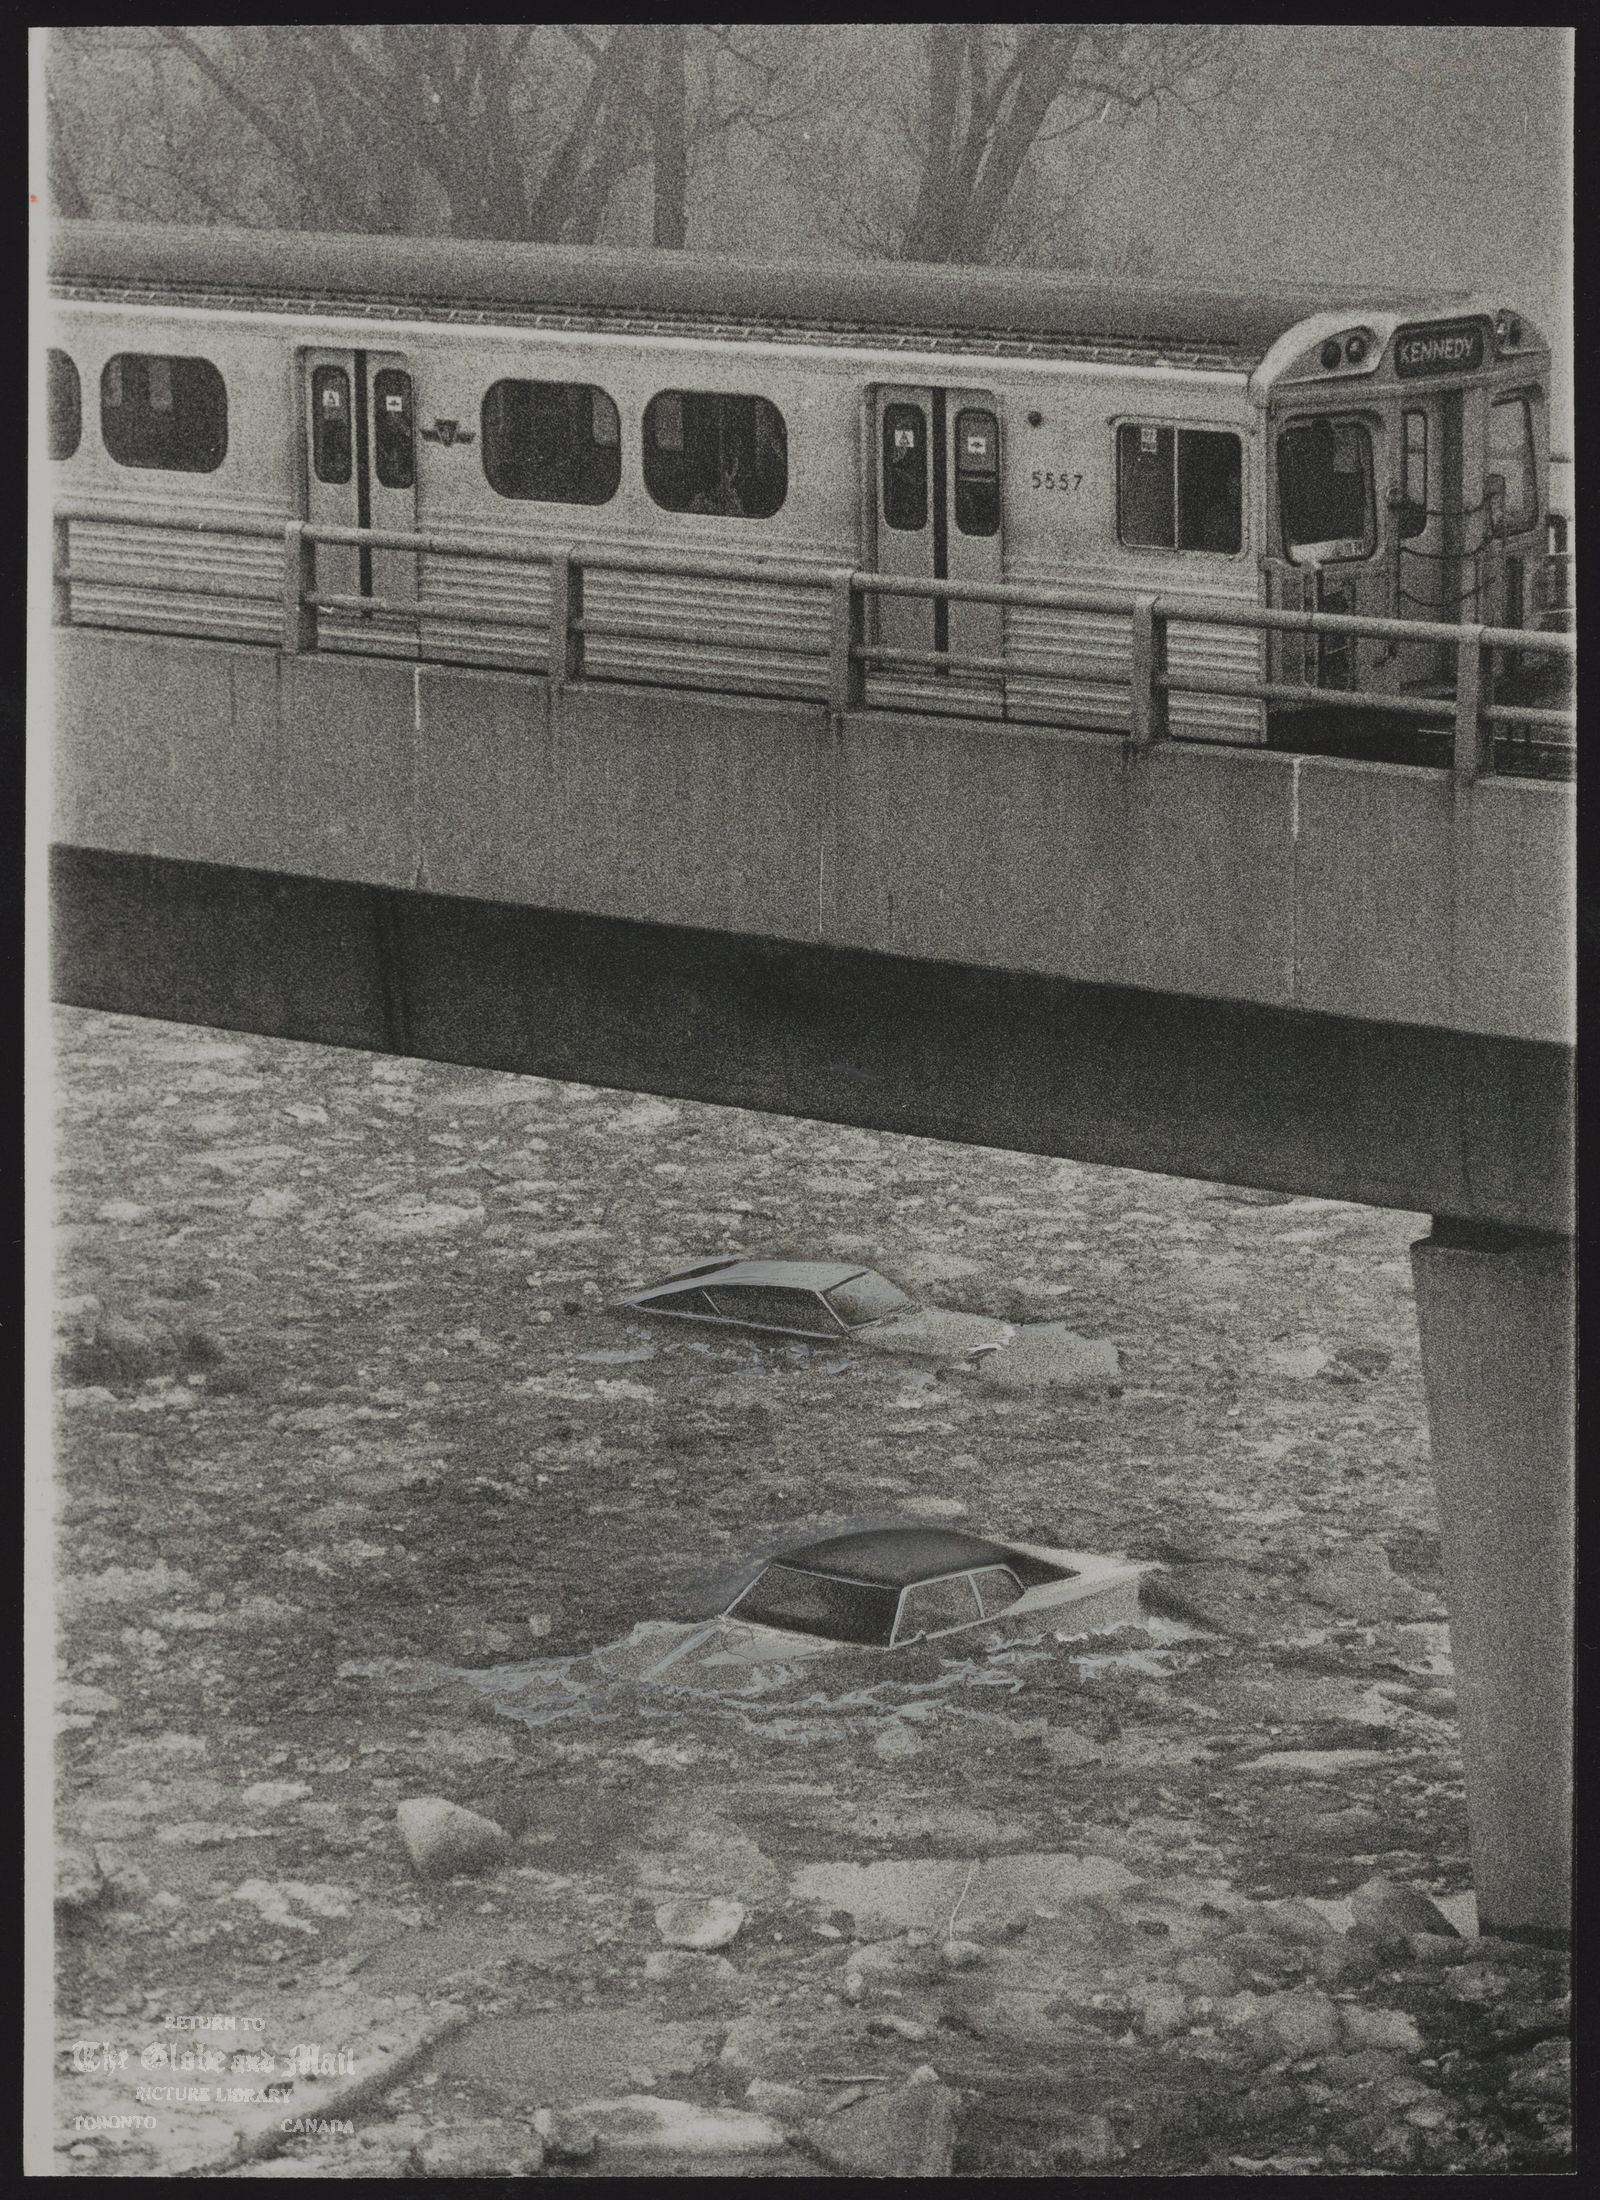 The notes transcribed from the back of this photograph are as follows: A subway train passes two cars almost submerged by ice and water in a parking lot at Toronto's Kings Mill Park. The early thaw caused the Humber River to flood its tanks.